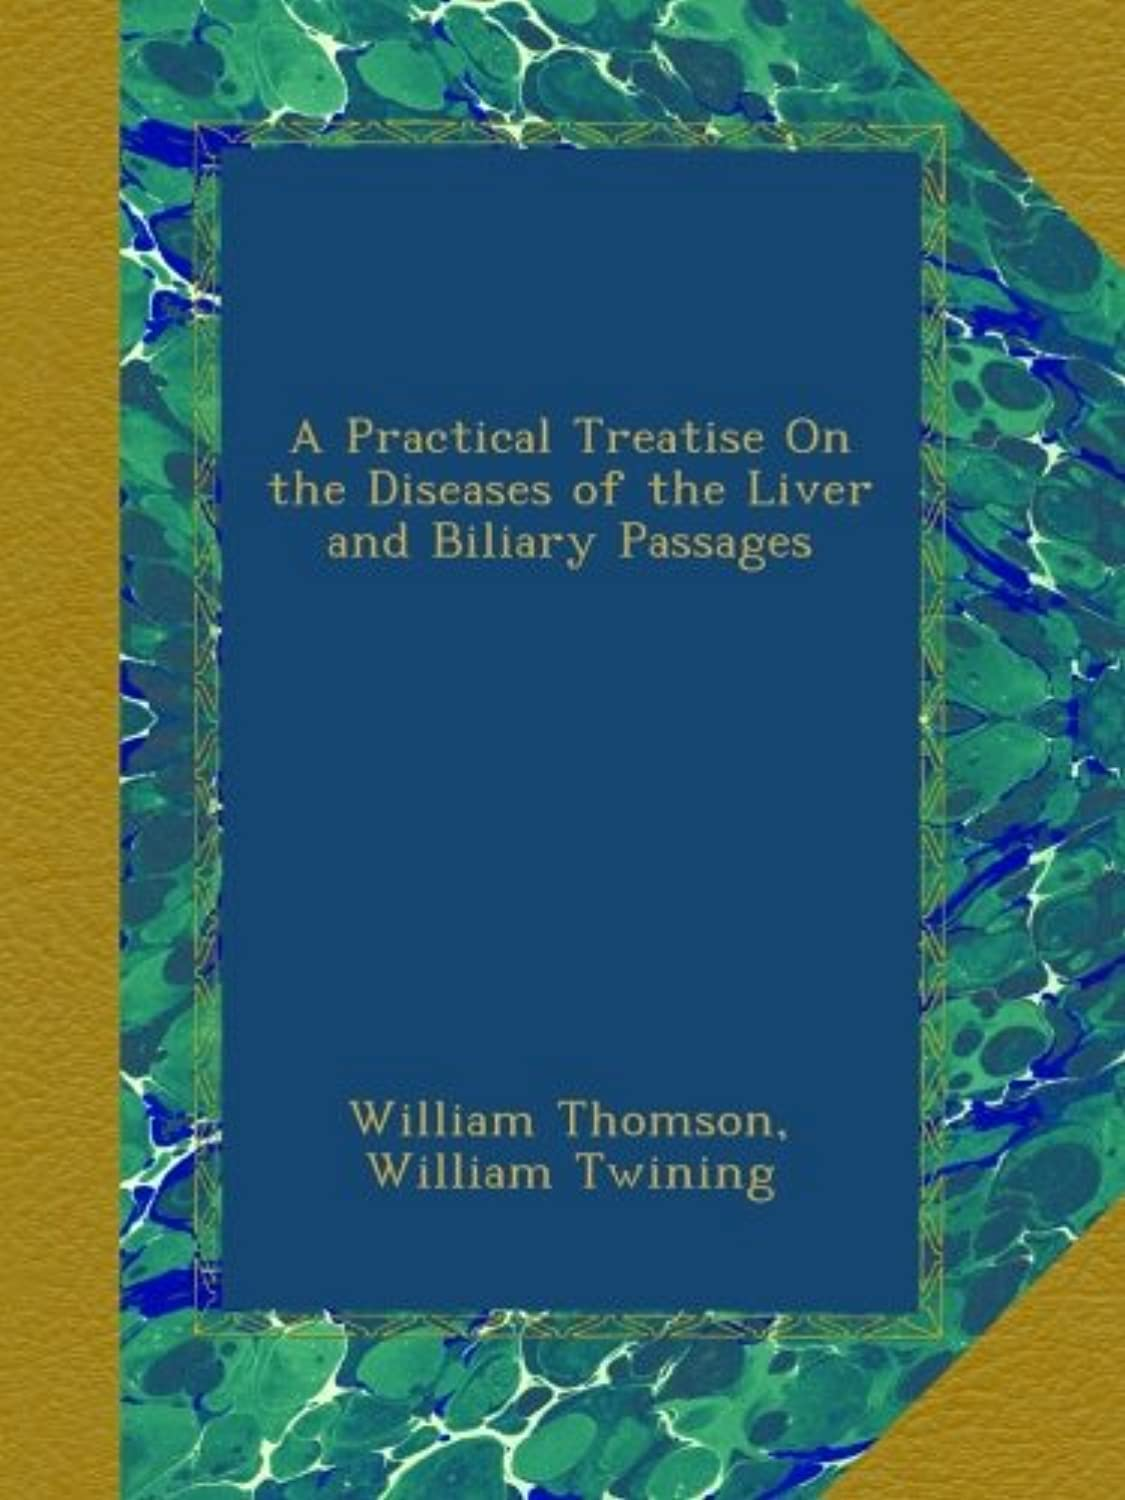 A Practical Treatise On the Diseases of the Liver and Biliary Passages